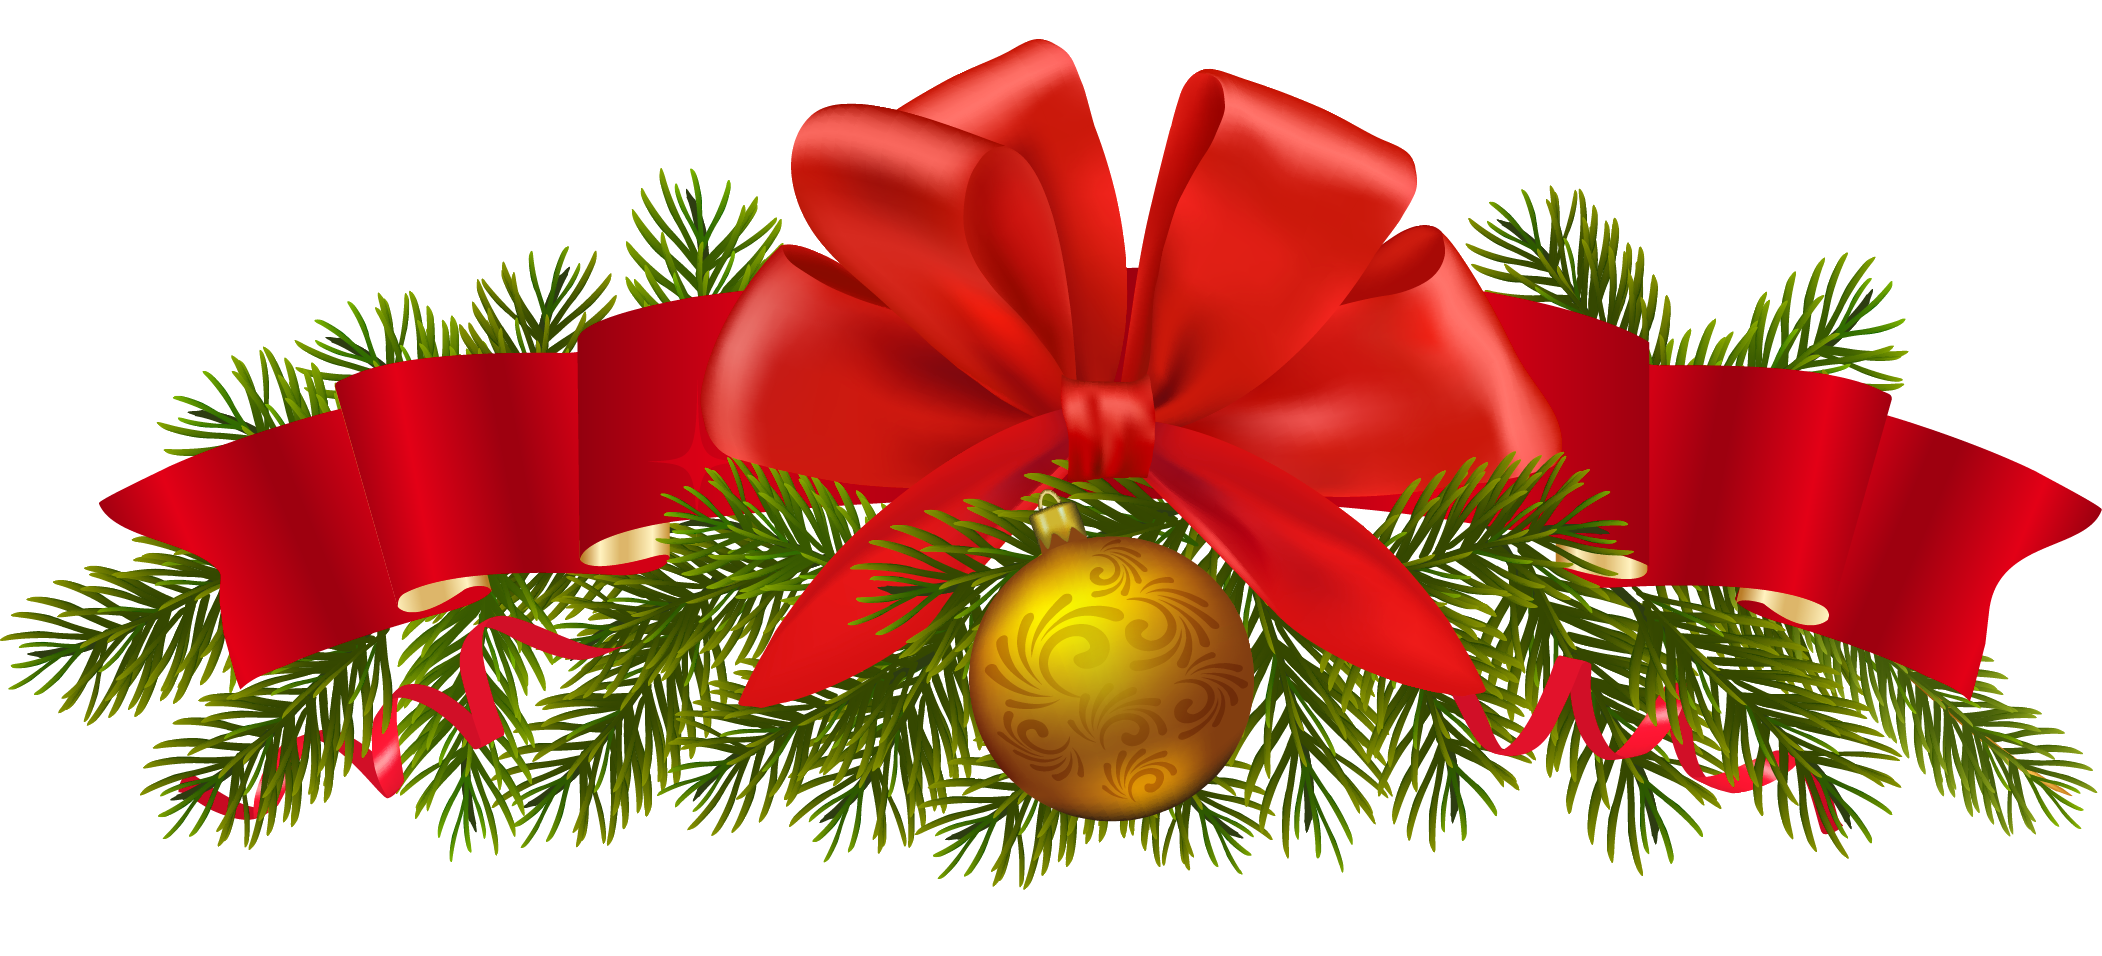 Focus on the holidays clipart high res png